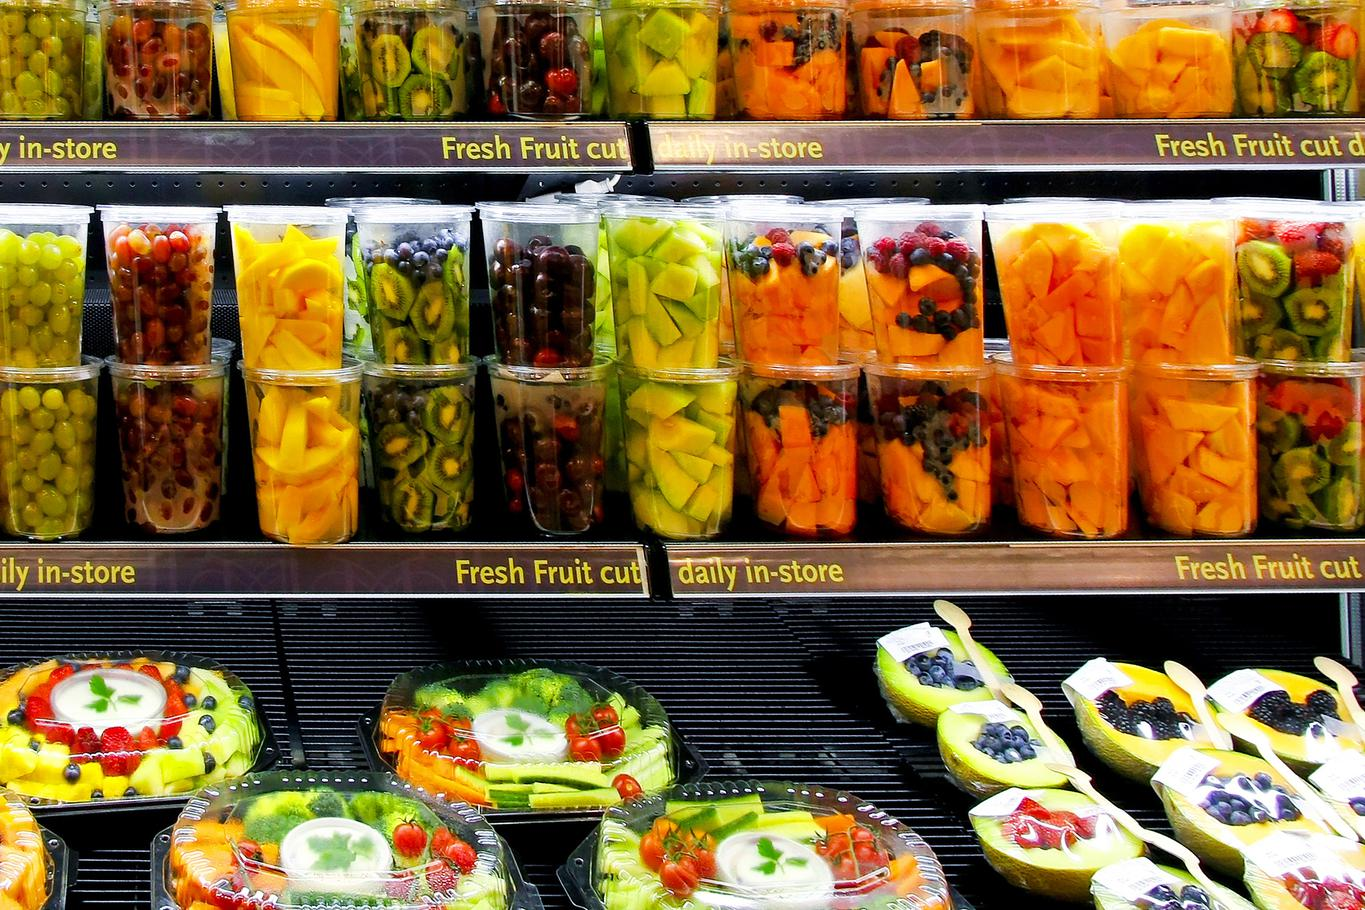 Make A Simple Display On Fat Content In Foods